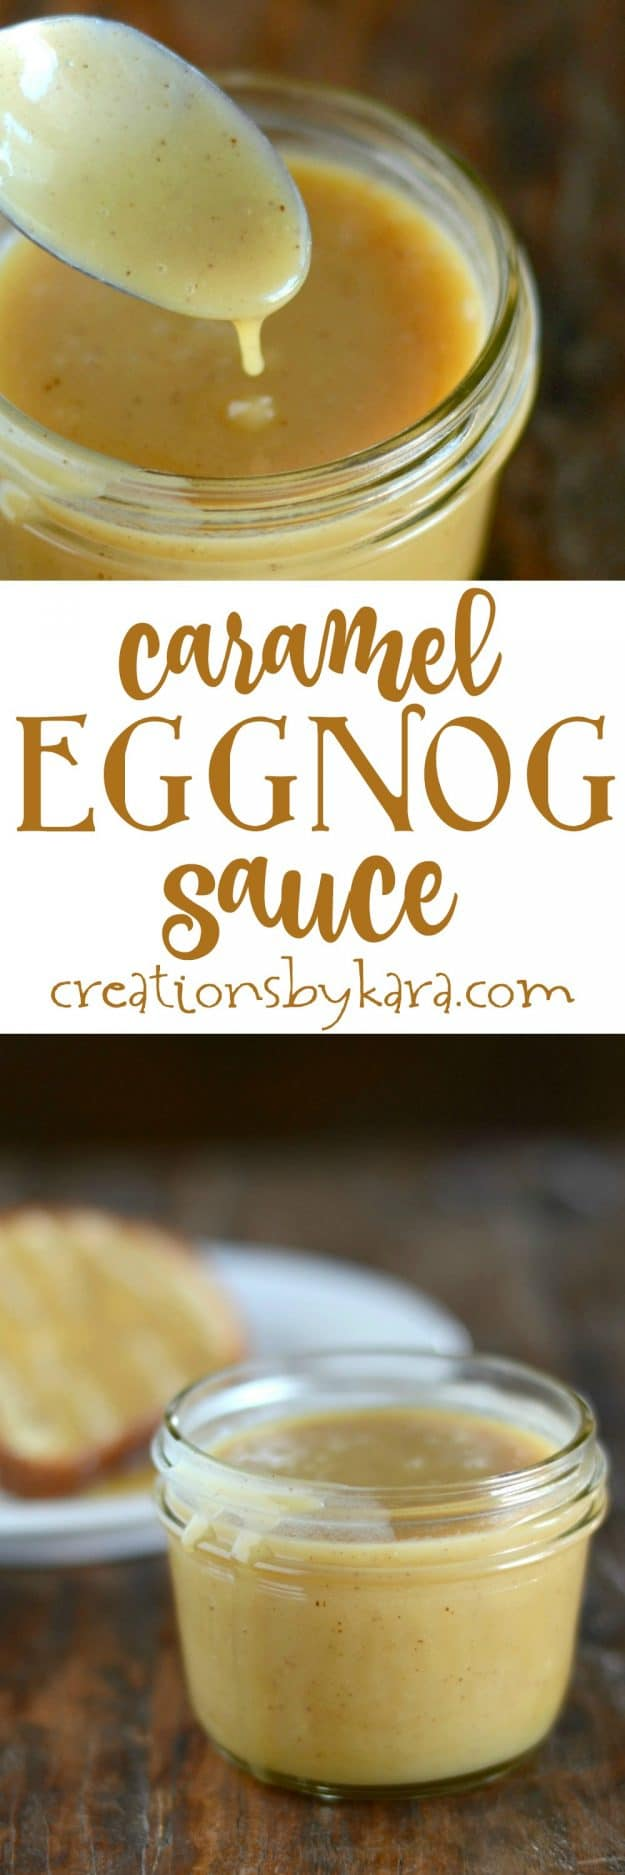 Caramel Eggnog Sauce- this rich and creamy sauce delicious over ice cream, or drizzled over pound cake!